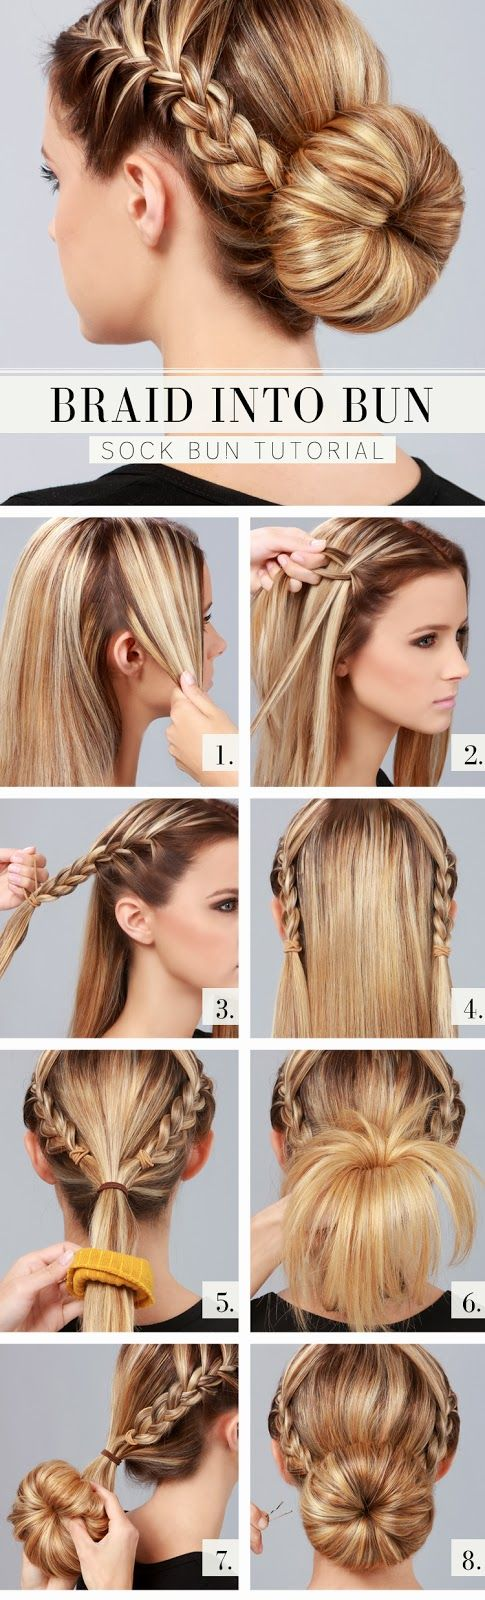 Why decide between a braid and a bun when you can have both!?